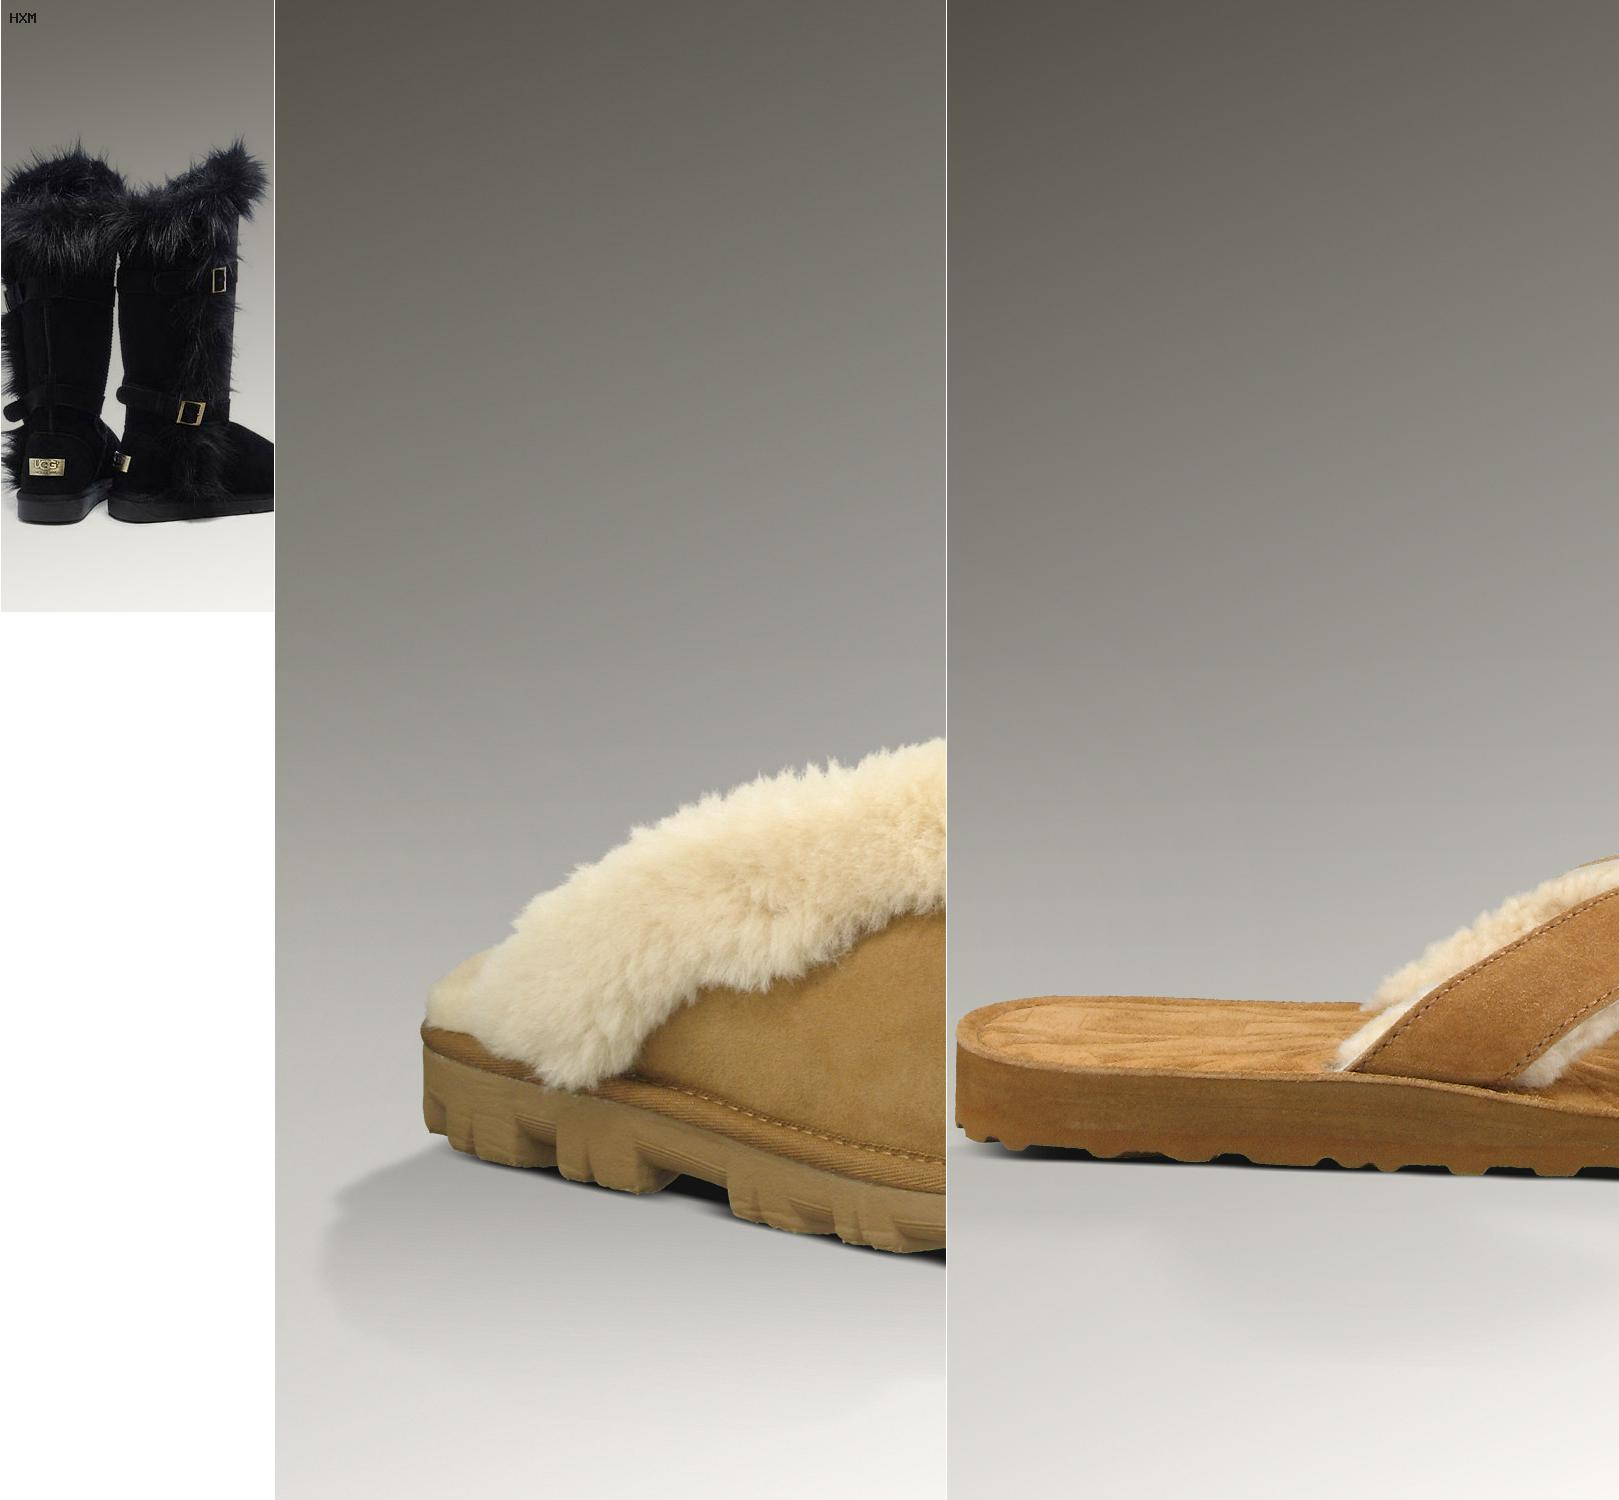 son las ugg impermeables